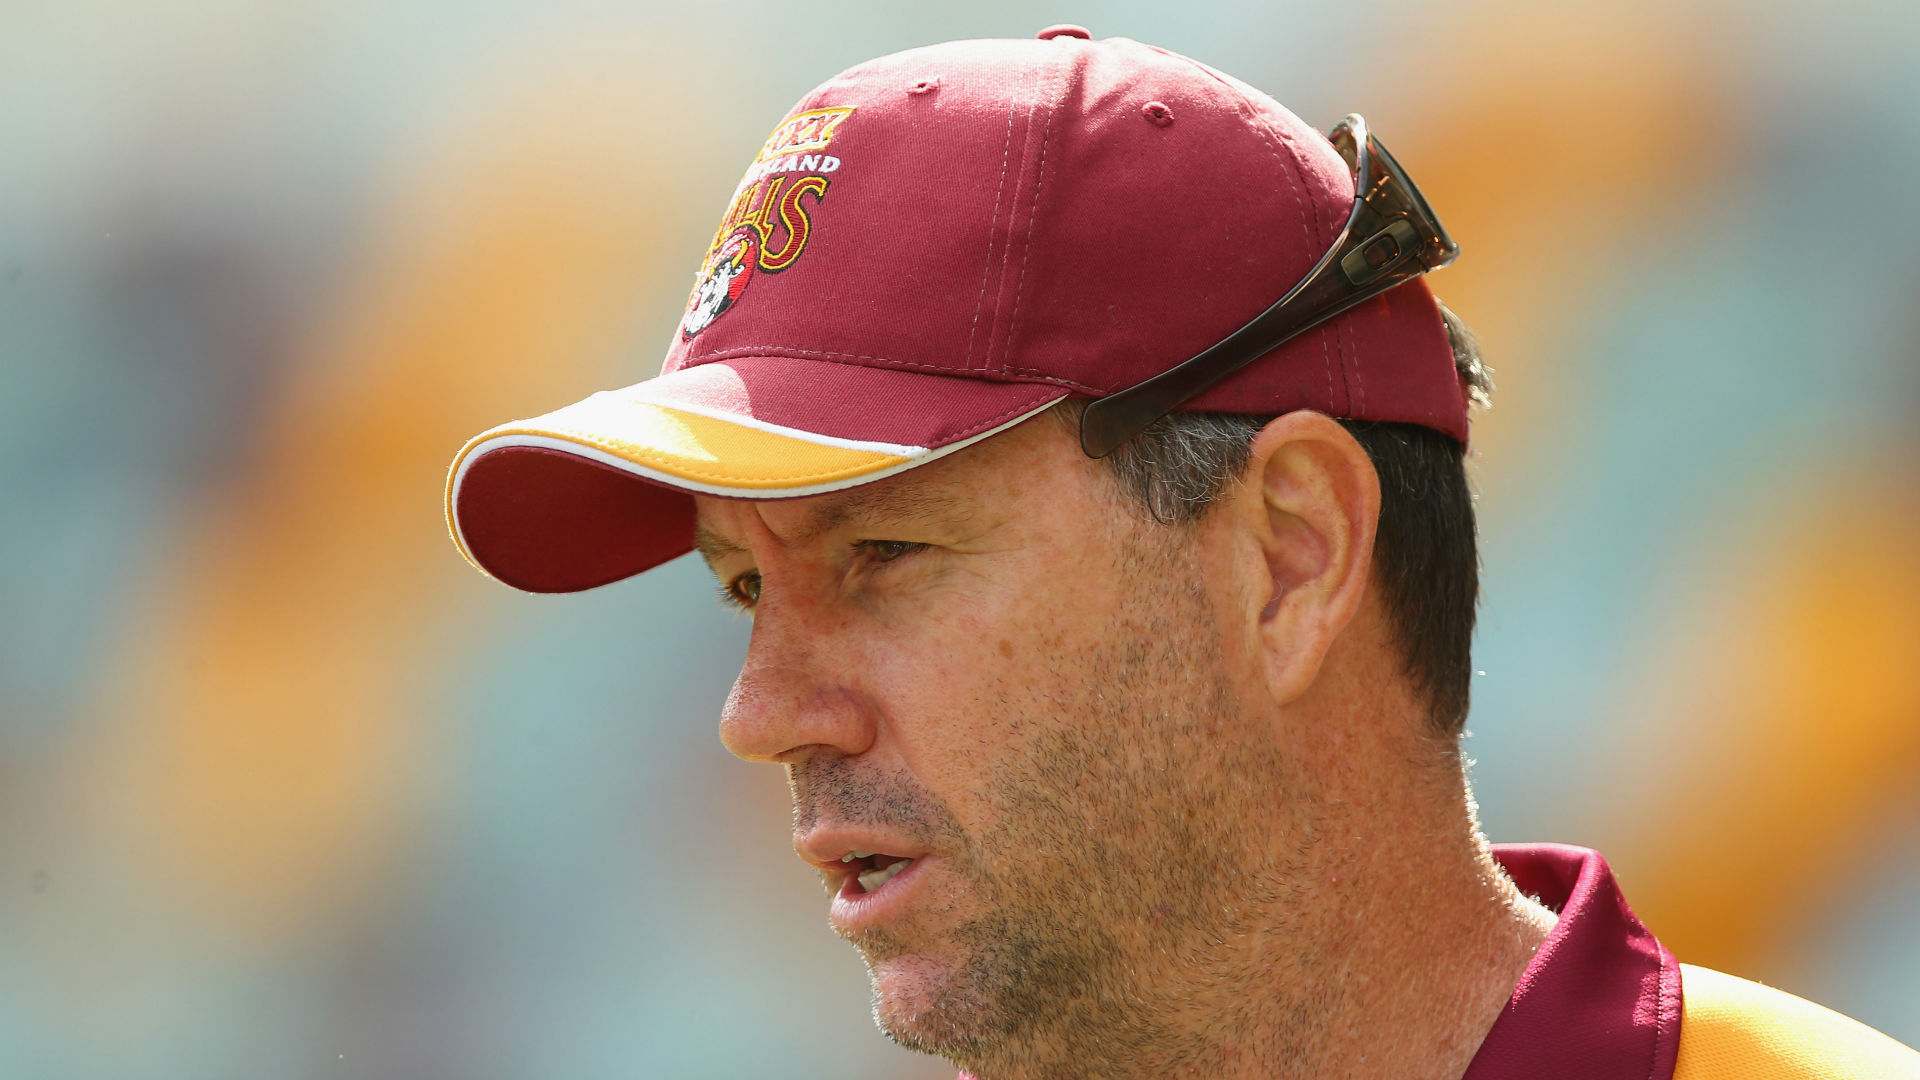 Ex-Australian cricketer appointed West Indies coach